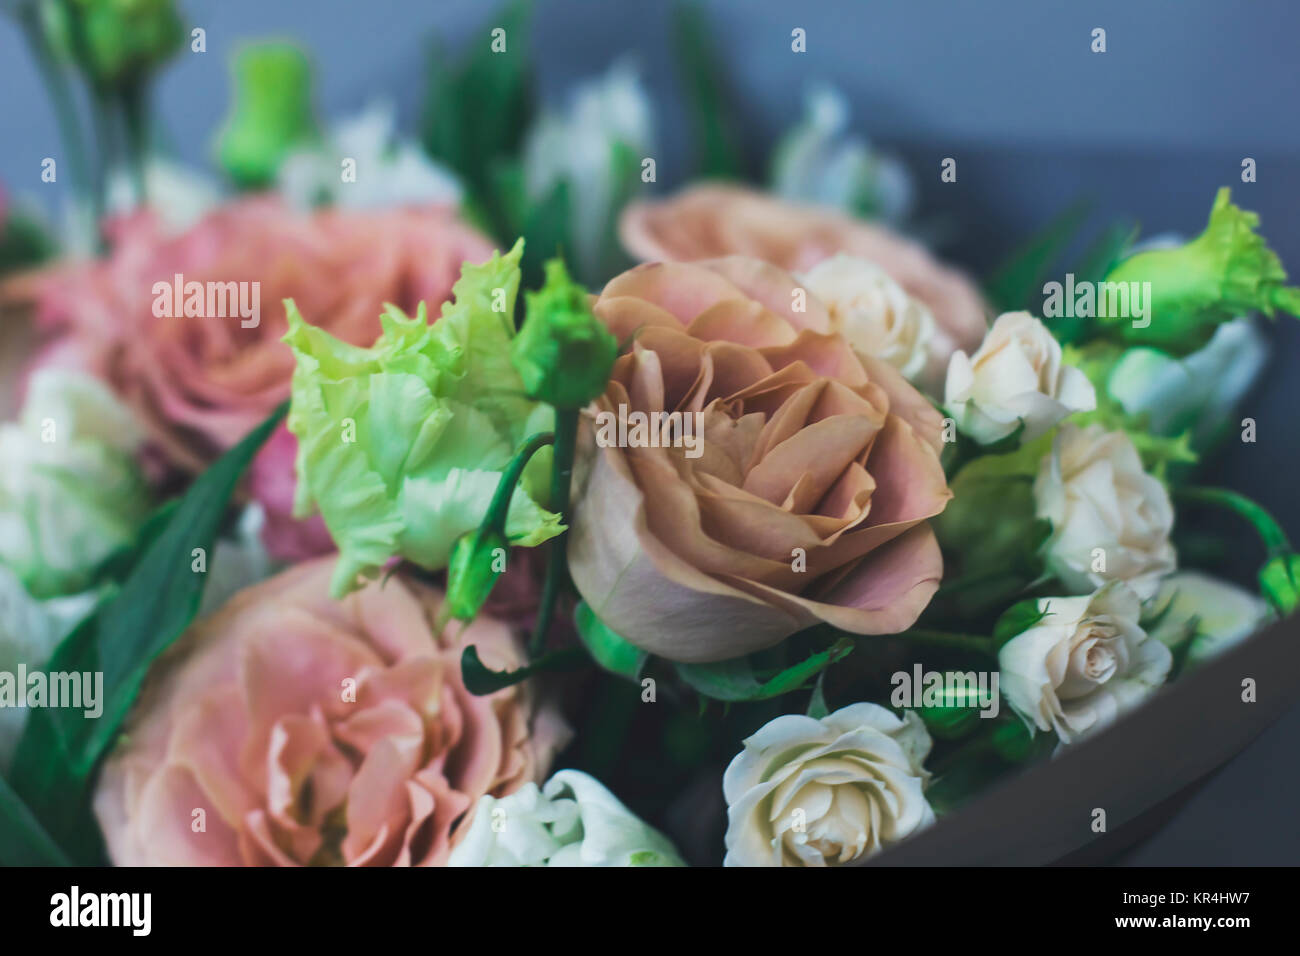 The Large Bouquet Of Ashen Roses Rustic Boho Chic Stock Photo Alamy